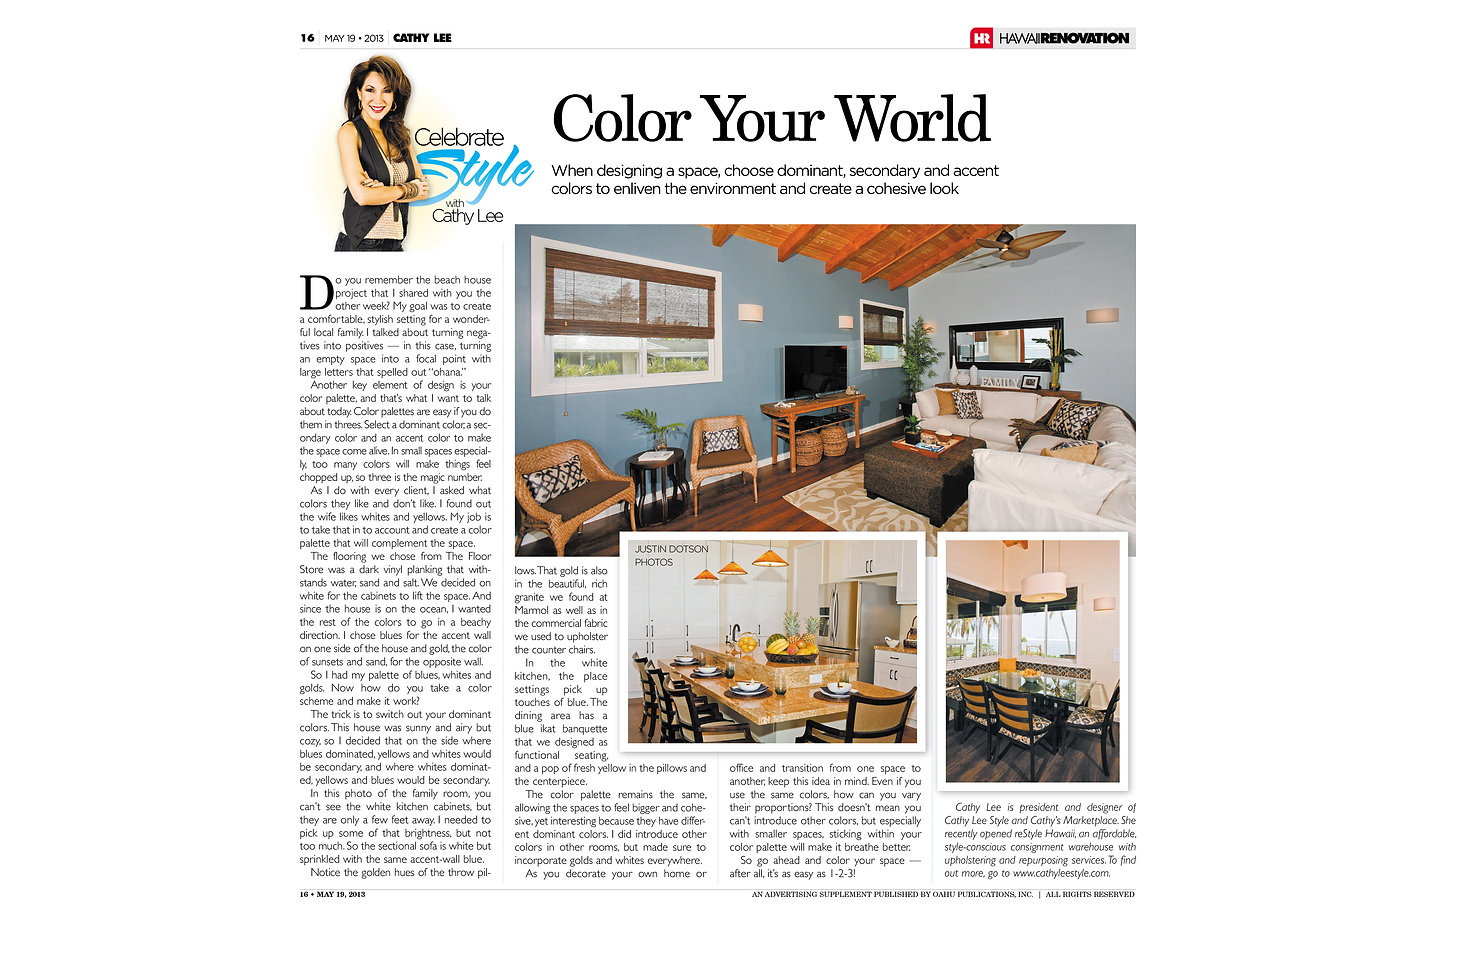 color your world_05_19_2013.jpg